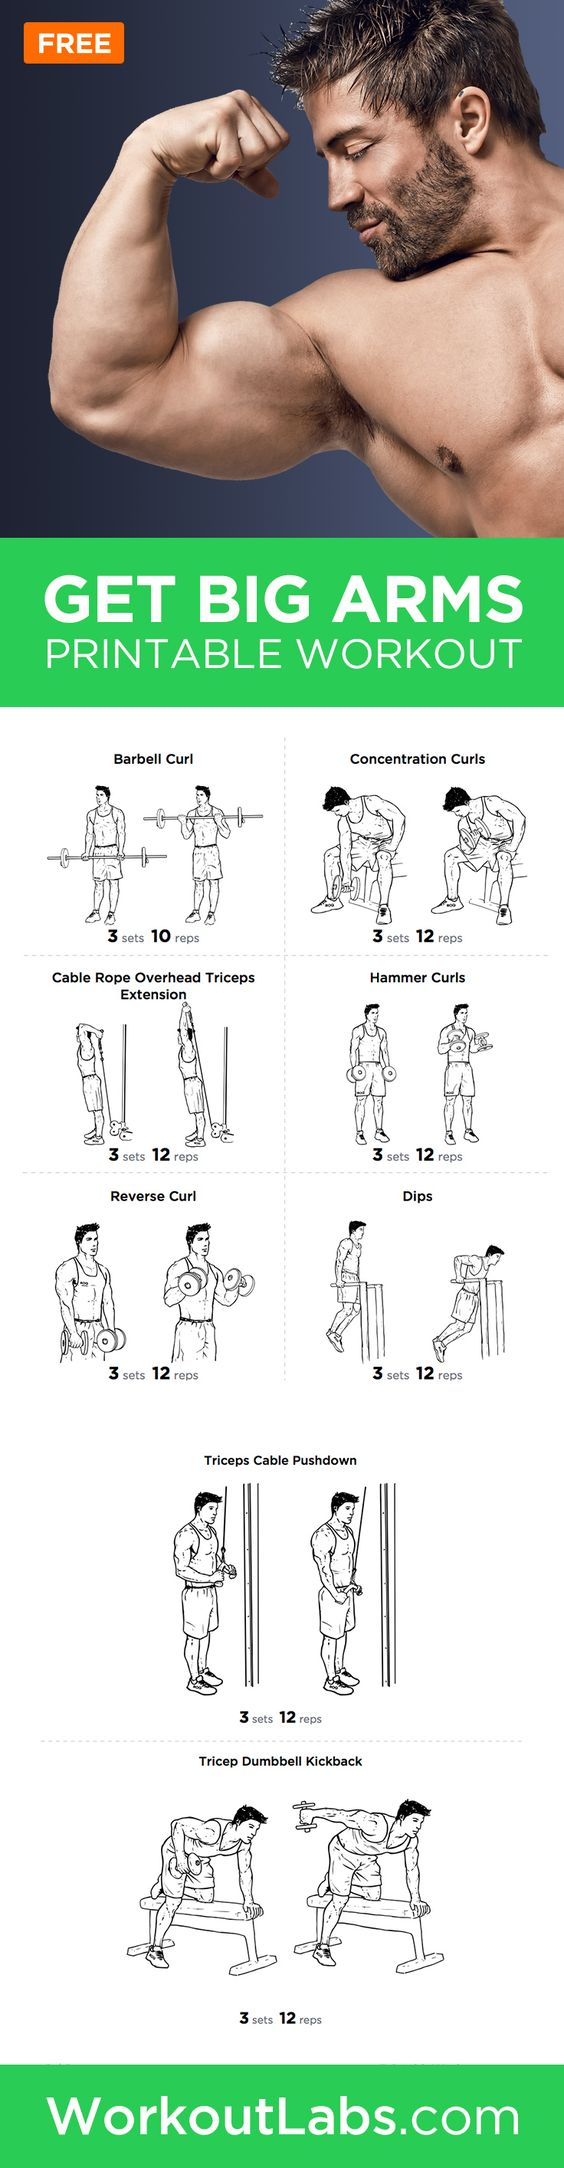 Lifting weights and body building. We all know a nice muscle-toned body is…